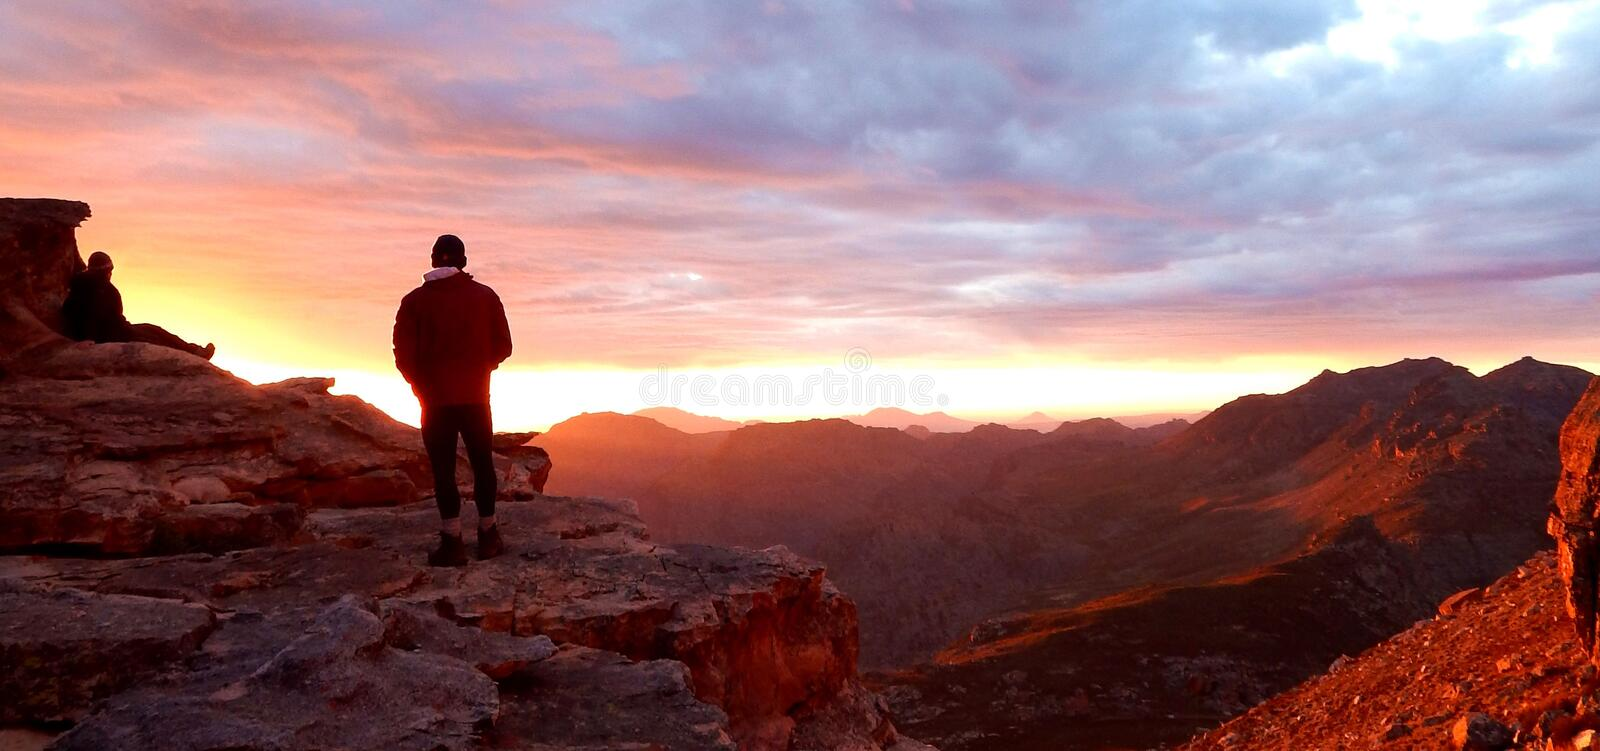 Sunset in the Cedarberg Mountains. royalty free stock photos